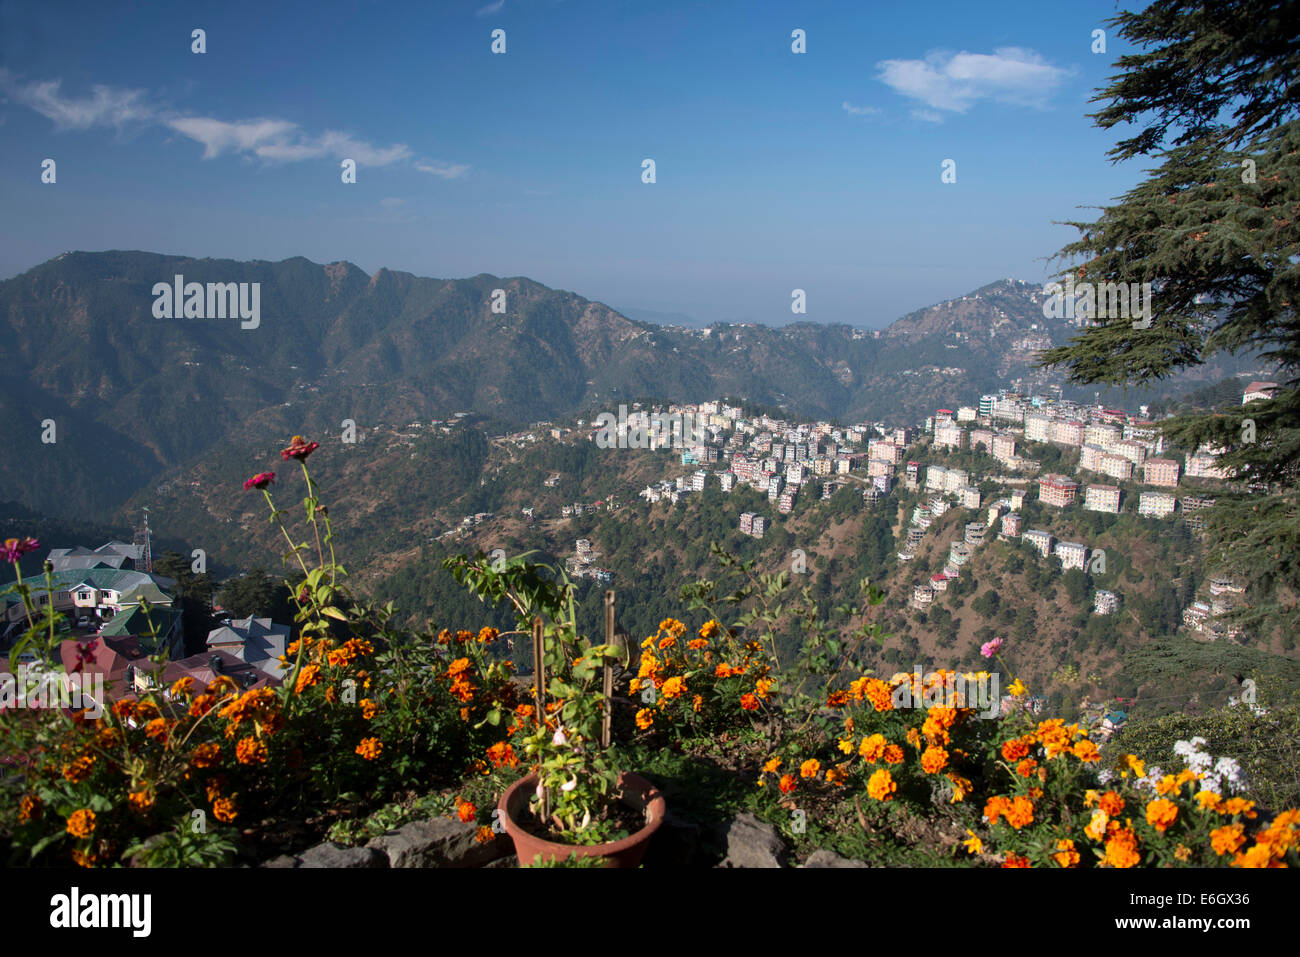 A morning view over part of Shimla suburbs on the Himalayan foothills in  Himachal Pradesh, India, - Stock Image